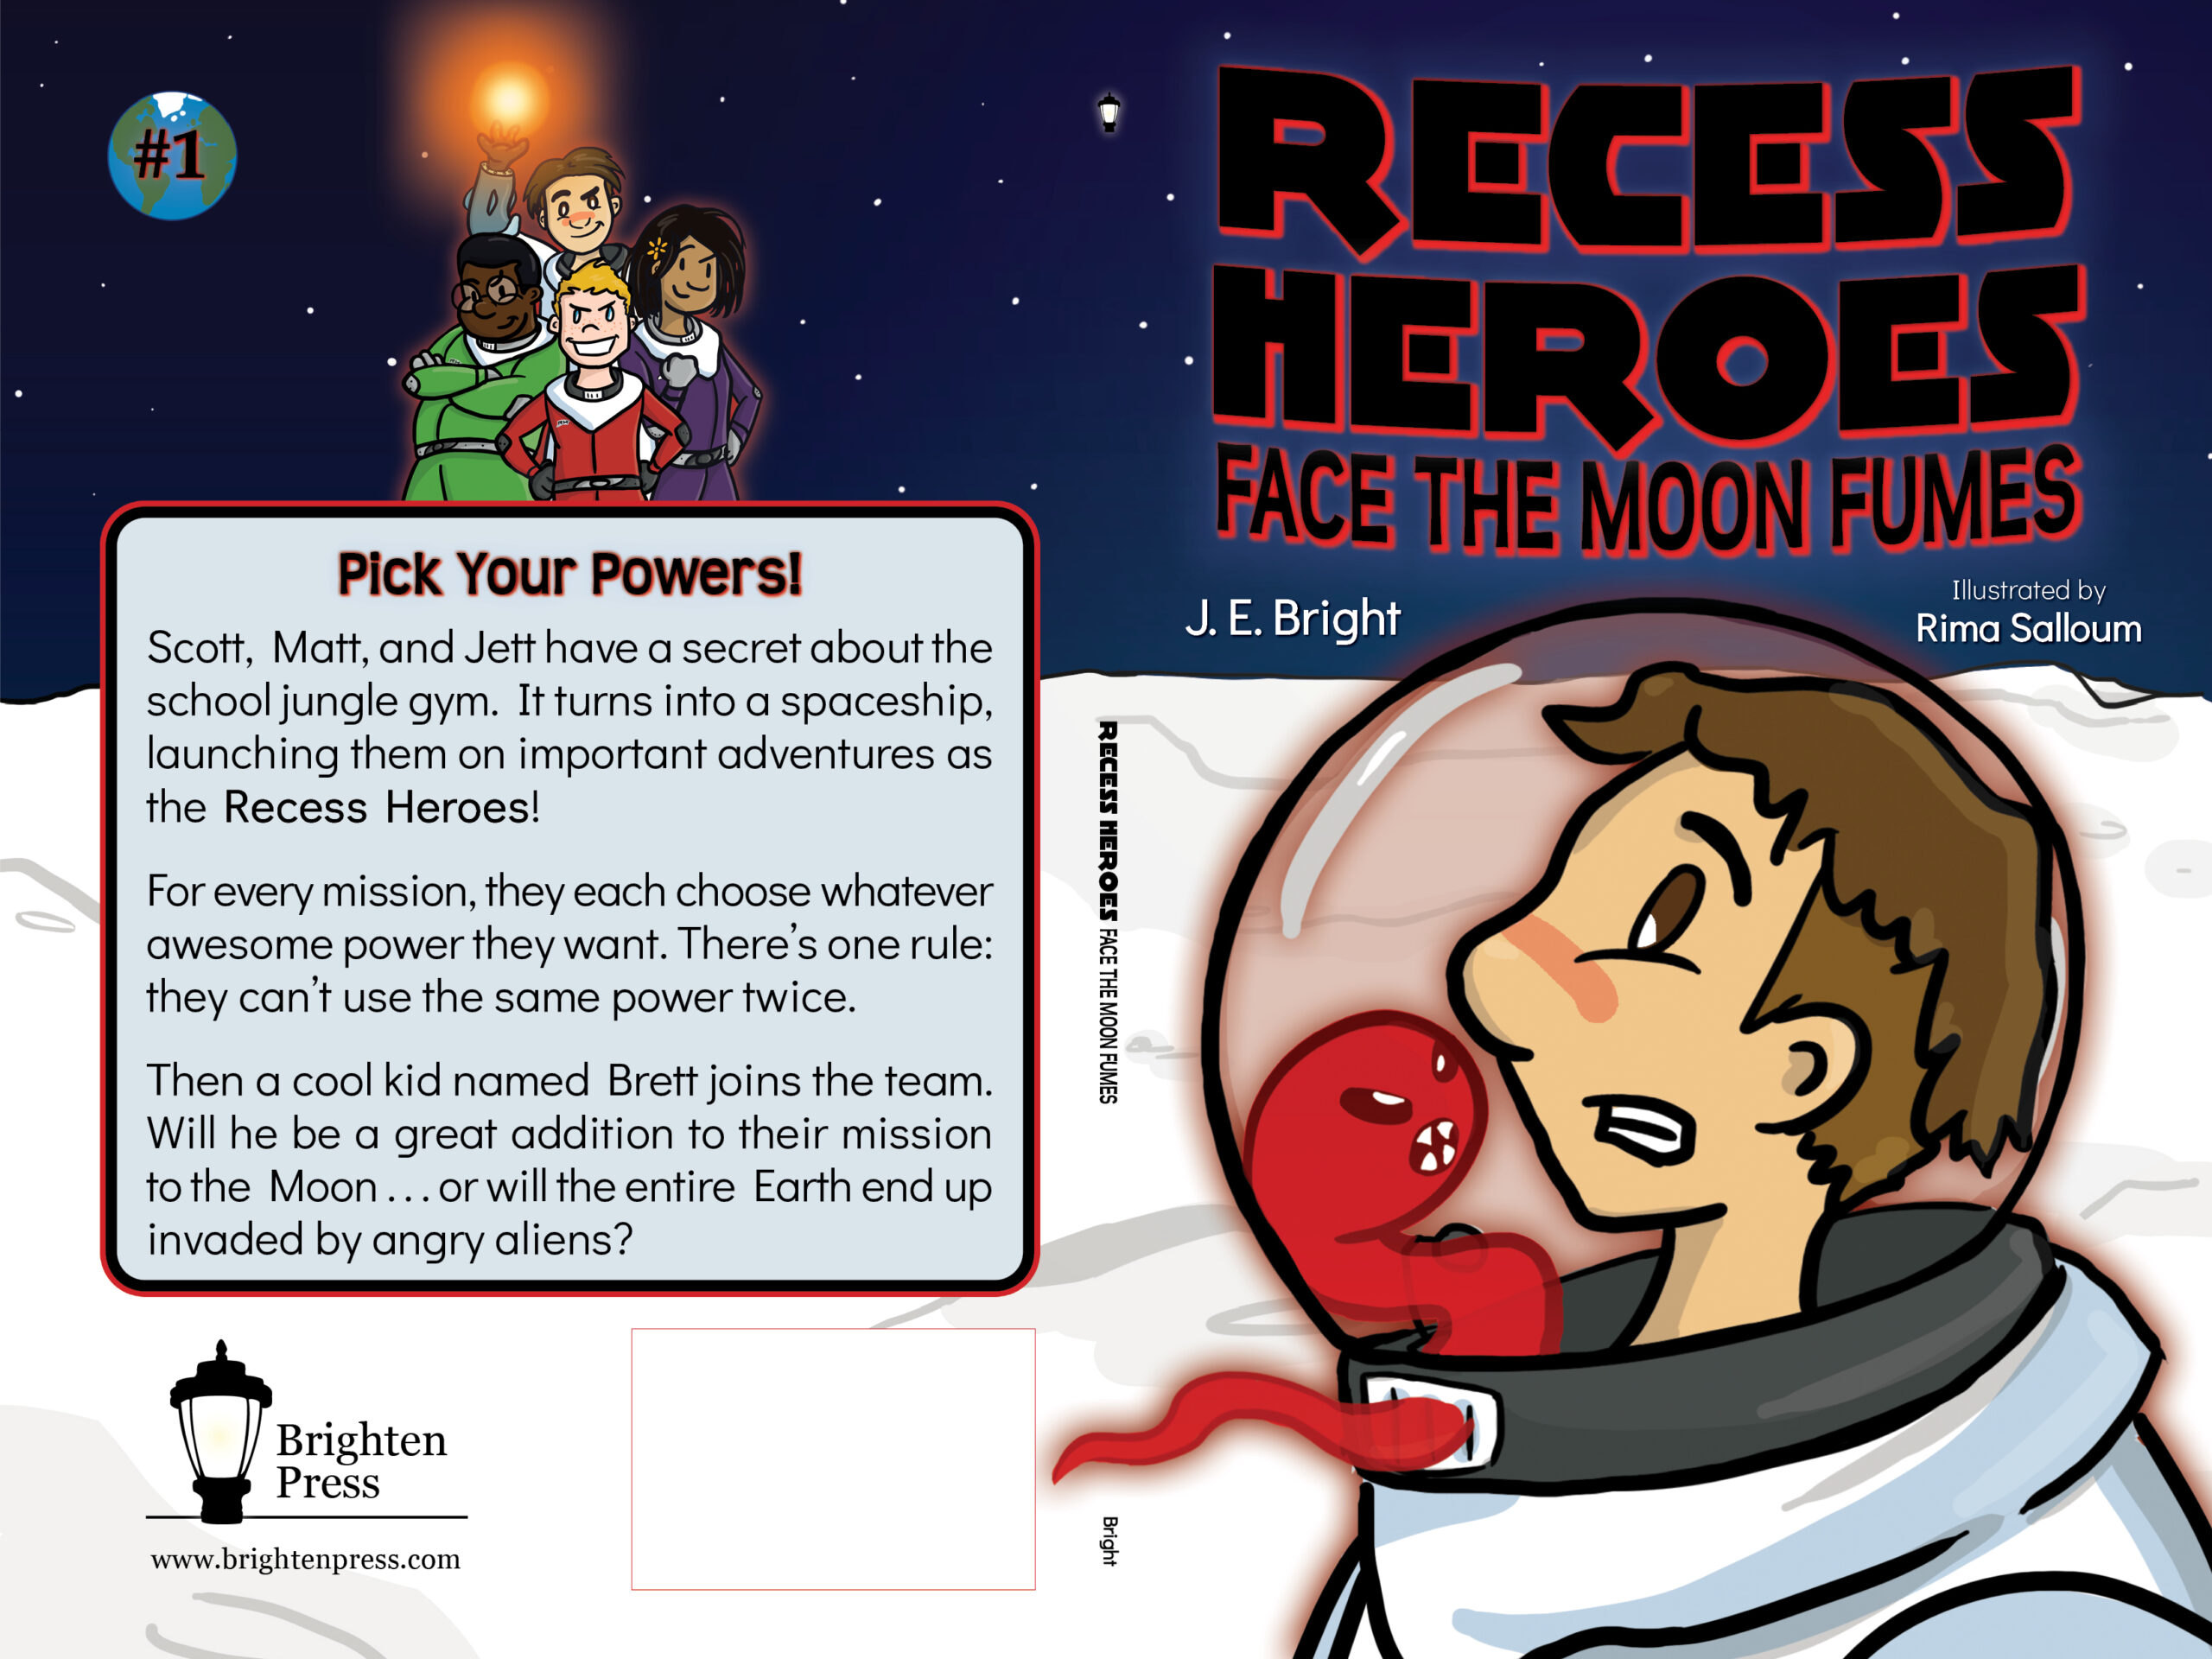 Recess Heroes Face the Moon Fumes by J. E. Bright from Brighten Press